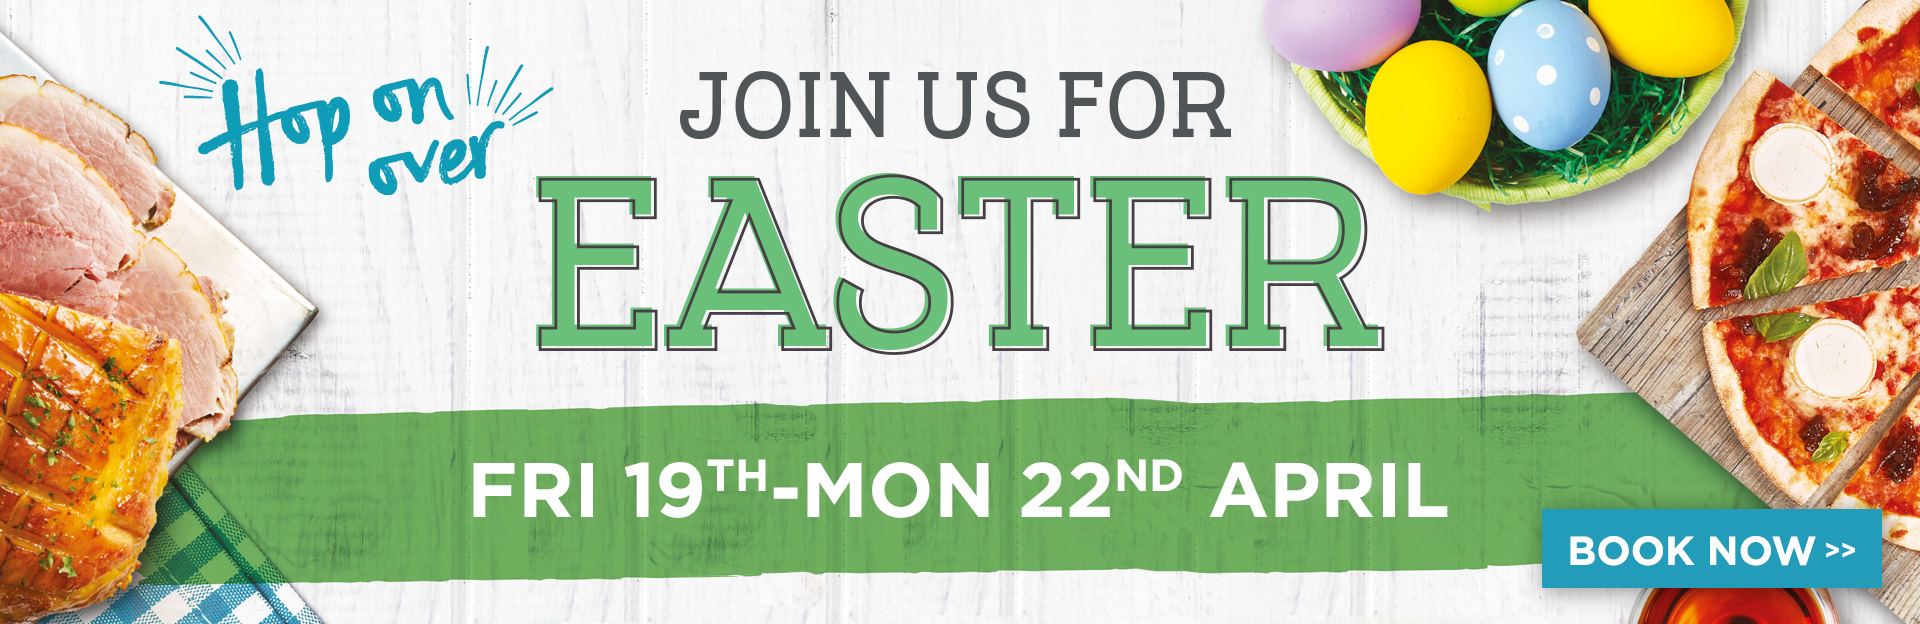 Easter at The Astley Arms